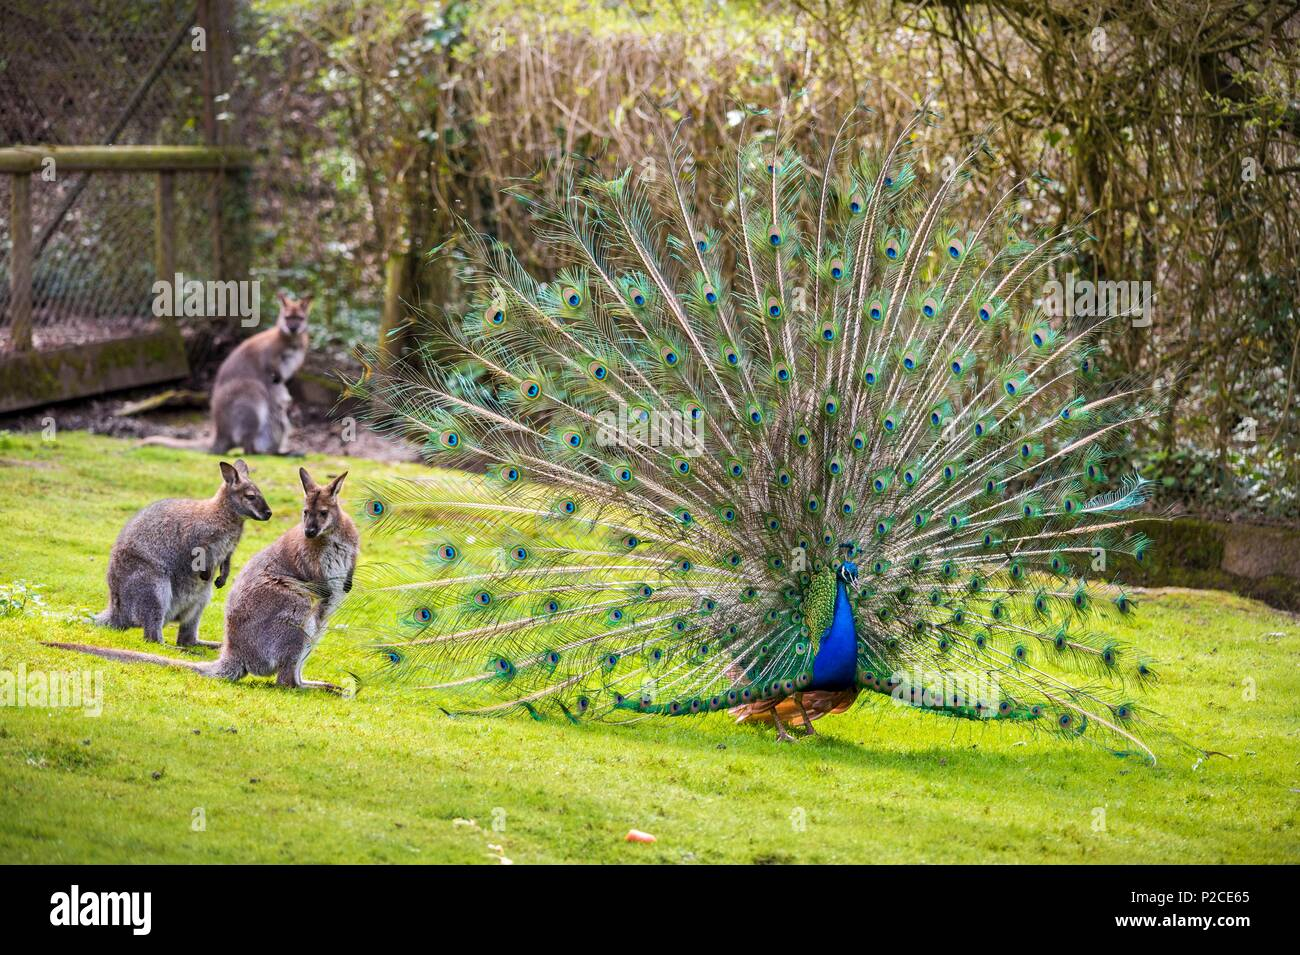 France, Sarthe, La Fleche, La Fleche Zoo, Blue peafow (Pavo cristatus) wheeling in front of Wallabies of Bennett subspecies of Red-necked Wallaby (Macropus rufogriseus)otection status, Unprotected species, IUCN status, Least Concern (LR / Ic) - Stock Image